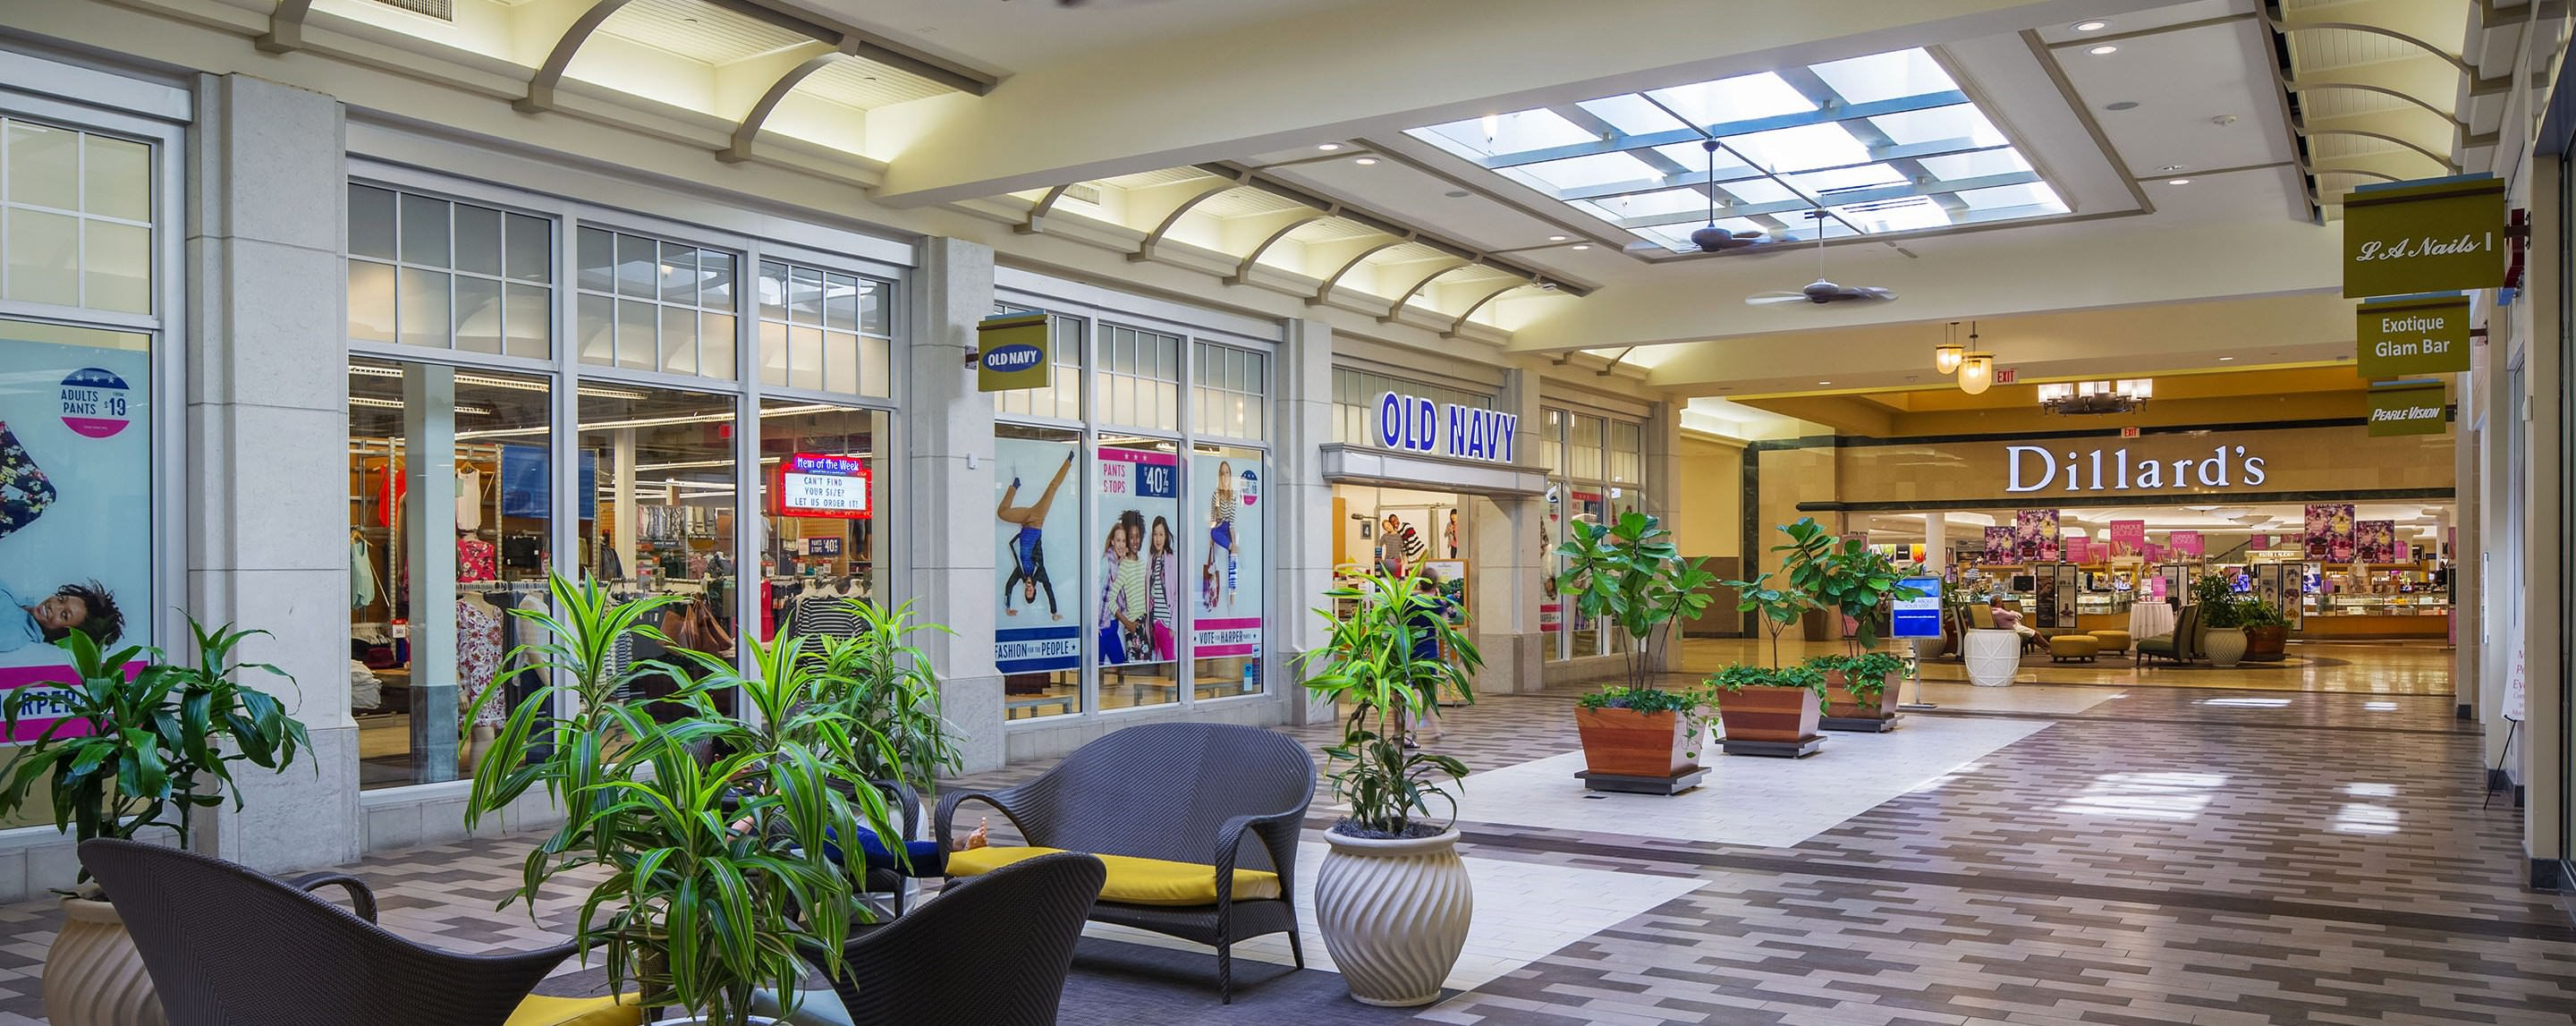 An interior common area of Coastland Center has seating options for shoppers and decorated with potted plants.